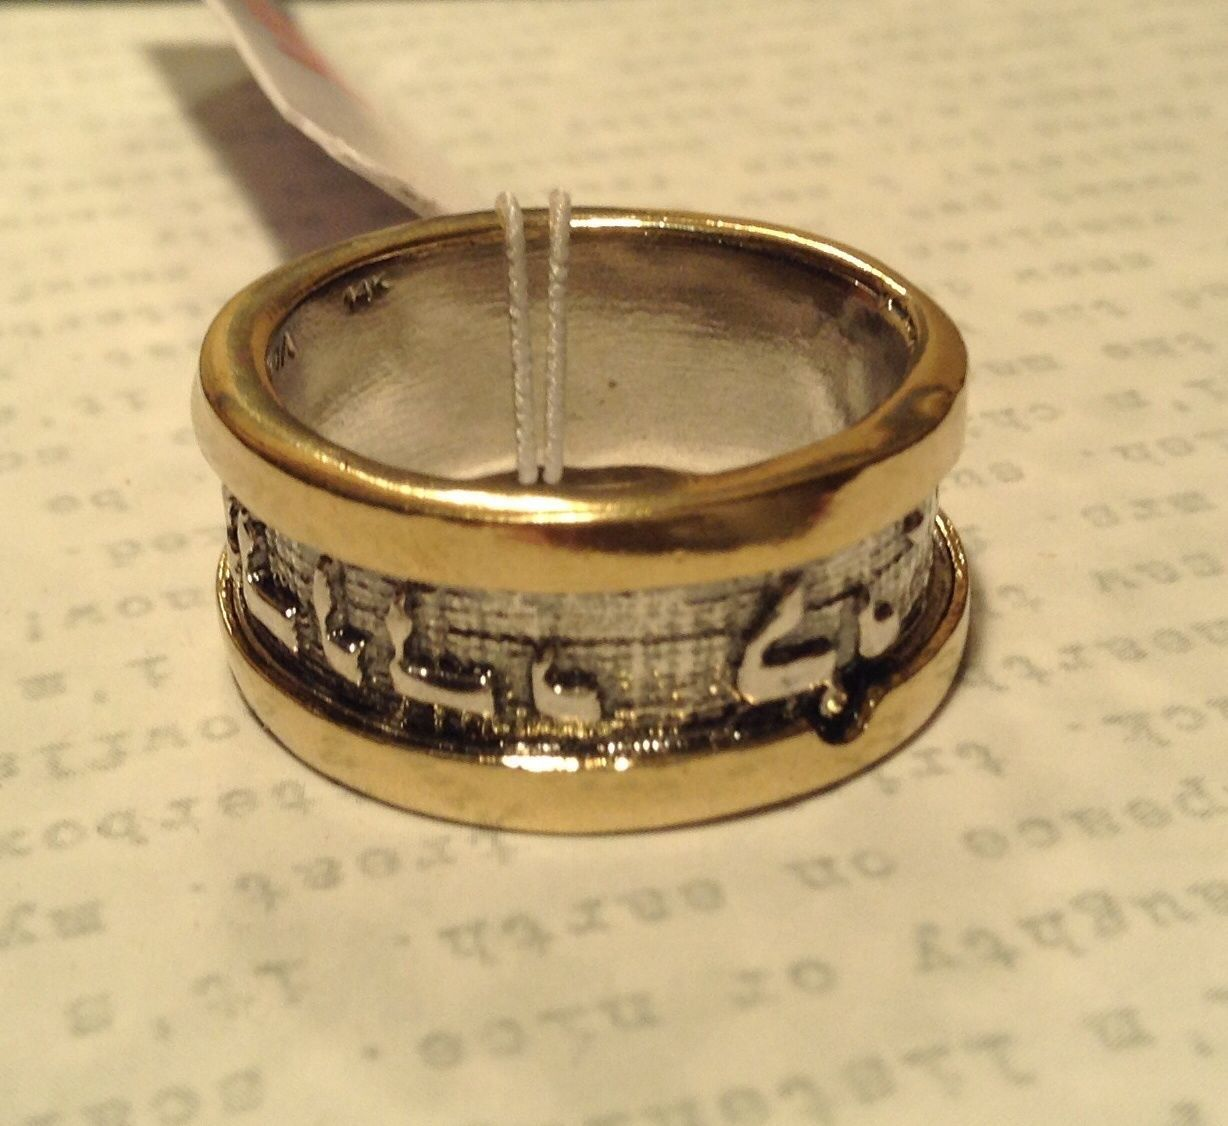 Gold Plated Bands Sterling Silver Size 7 Ring Judaica Inscription 2 Micron 14K